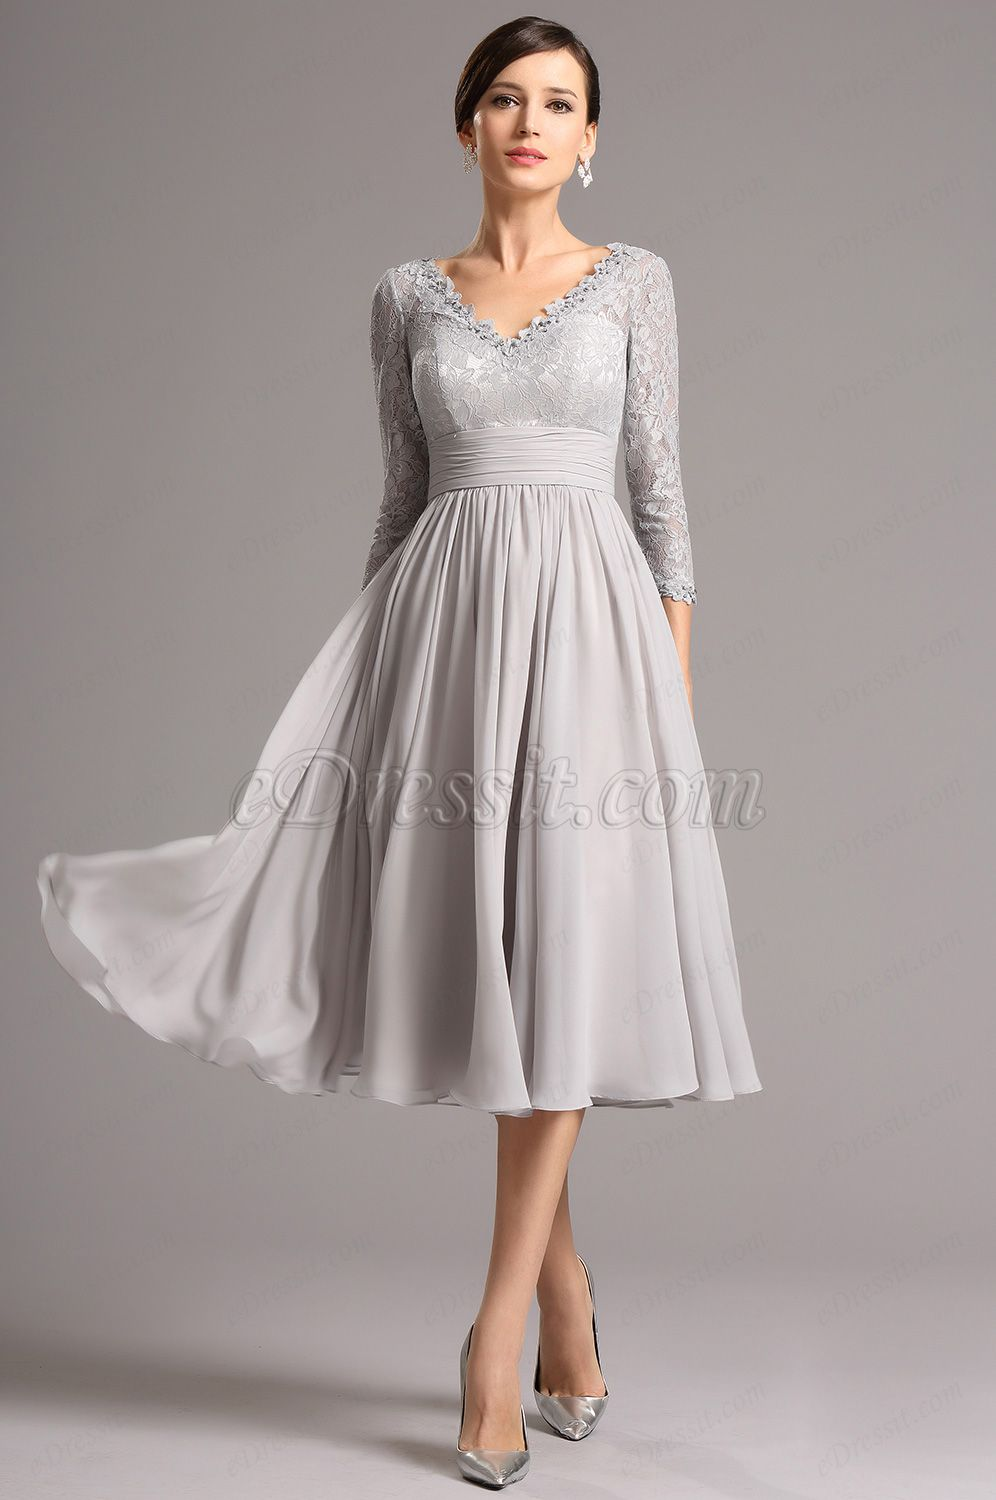 USD 139.99] Long Lace Sleeves Plunging Neck Grey Tea Length Dress ...